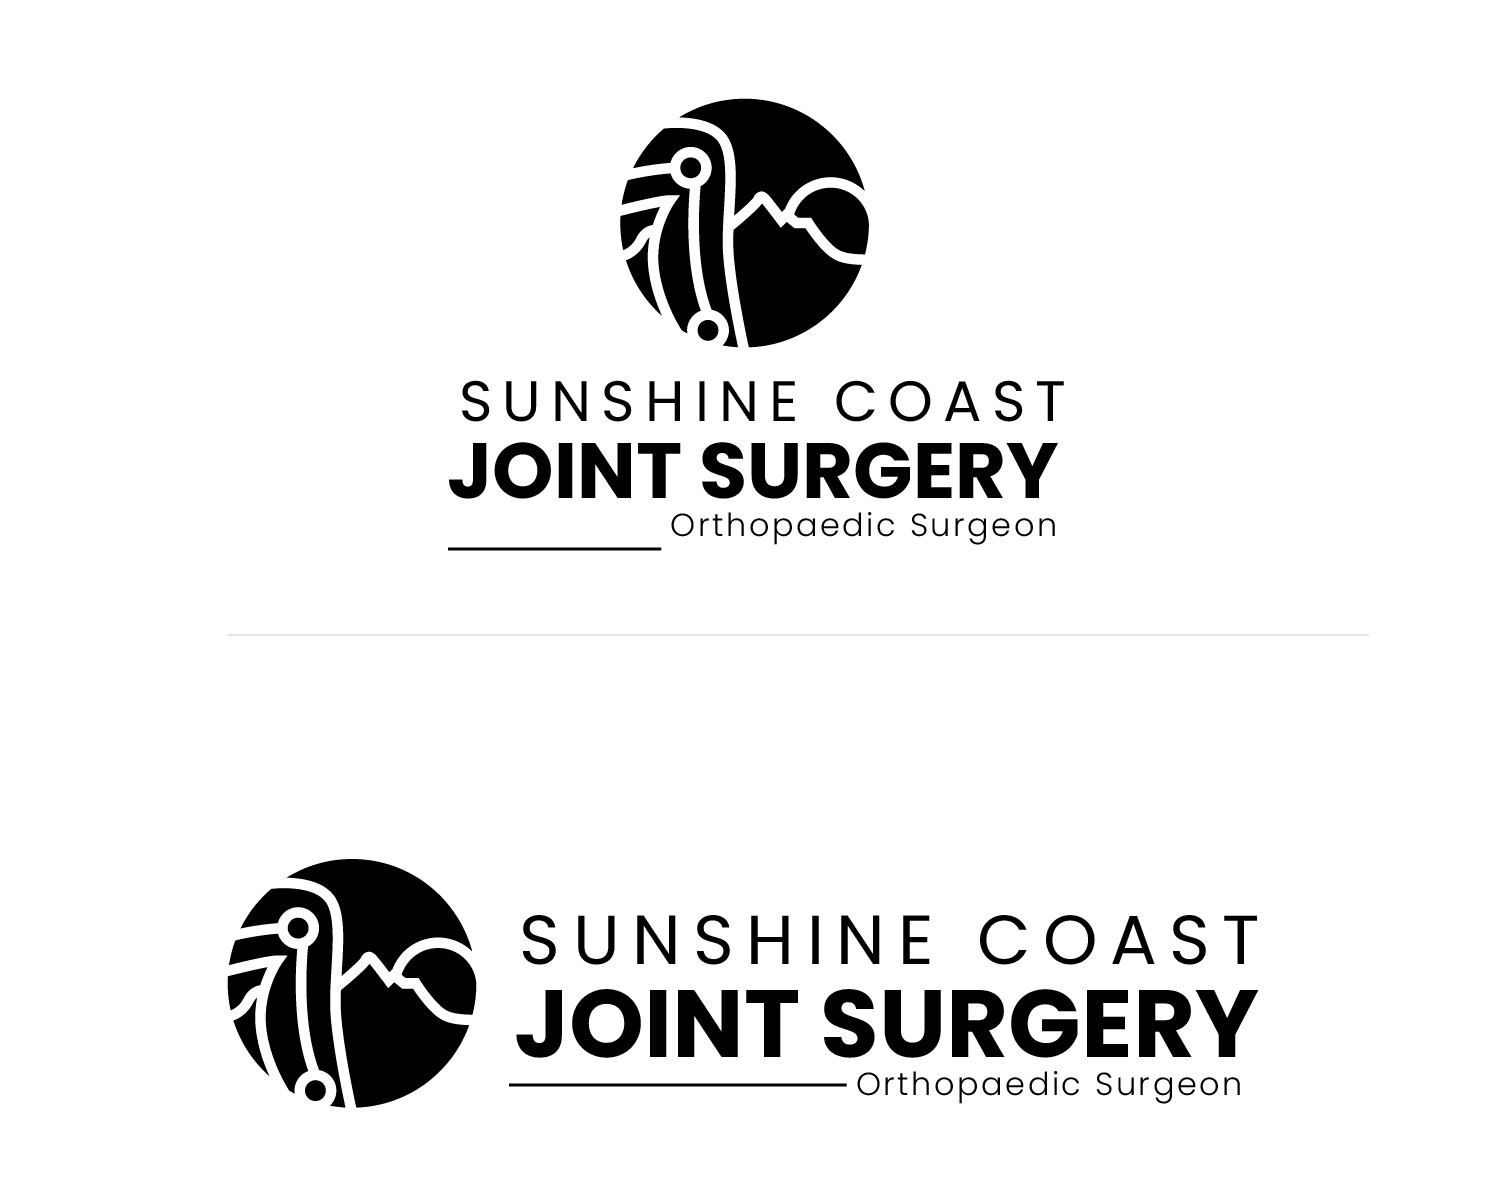 Serious Professional Healthcare Logo Design For Sunshine Coast Joint Surgery Or Scjs By Purveshjain Design 24732951